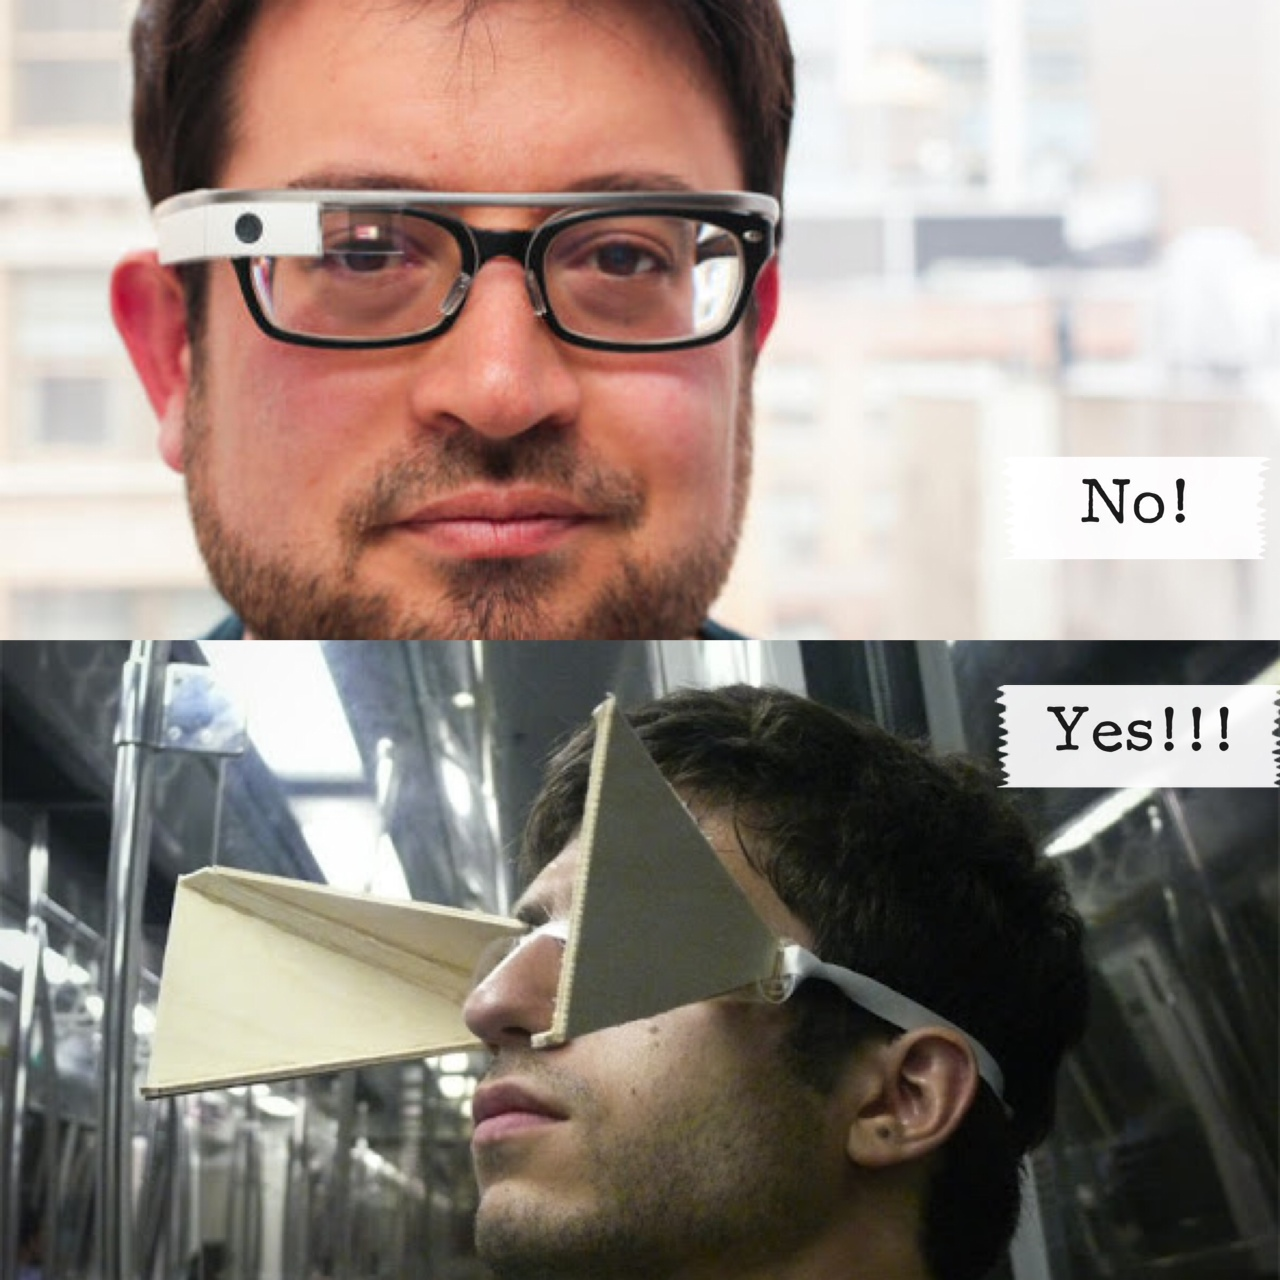 Blinders seem better than Google glasses.